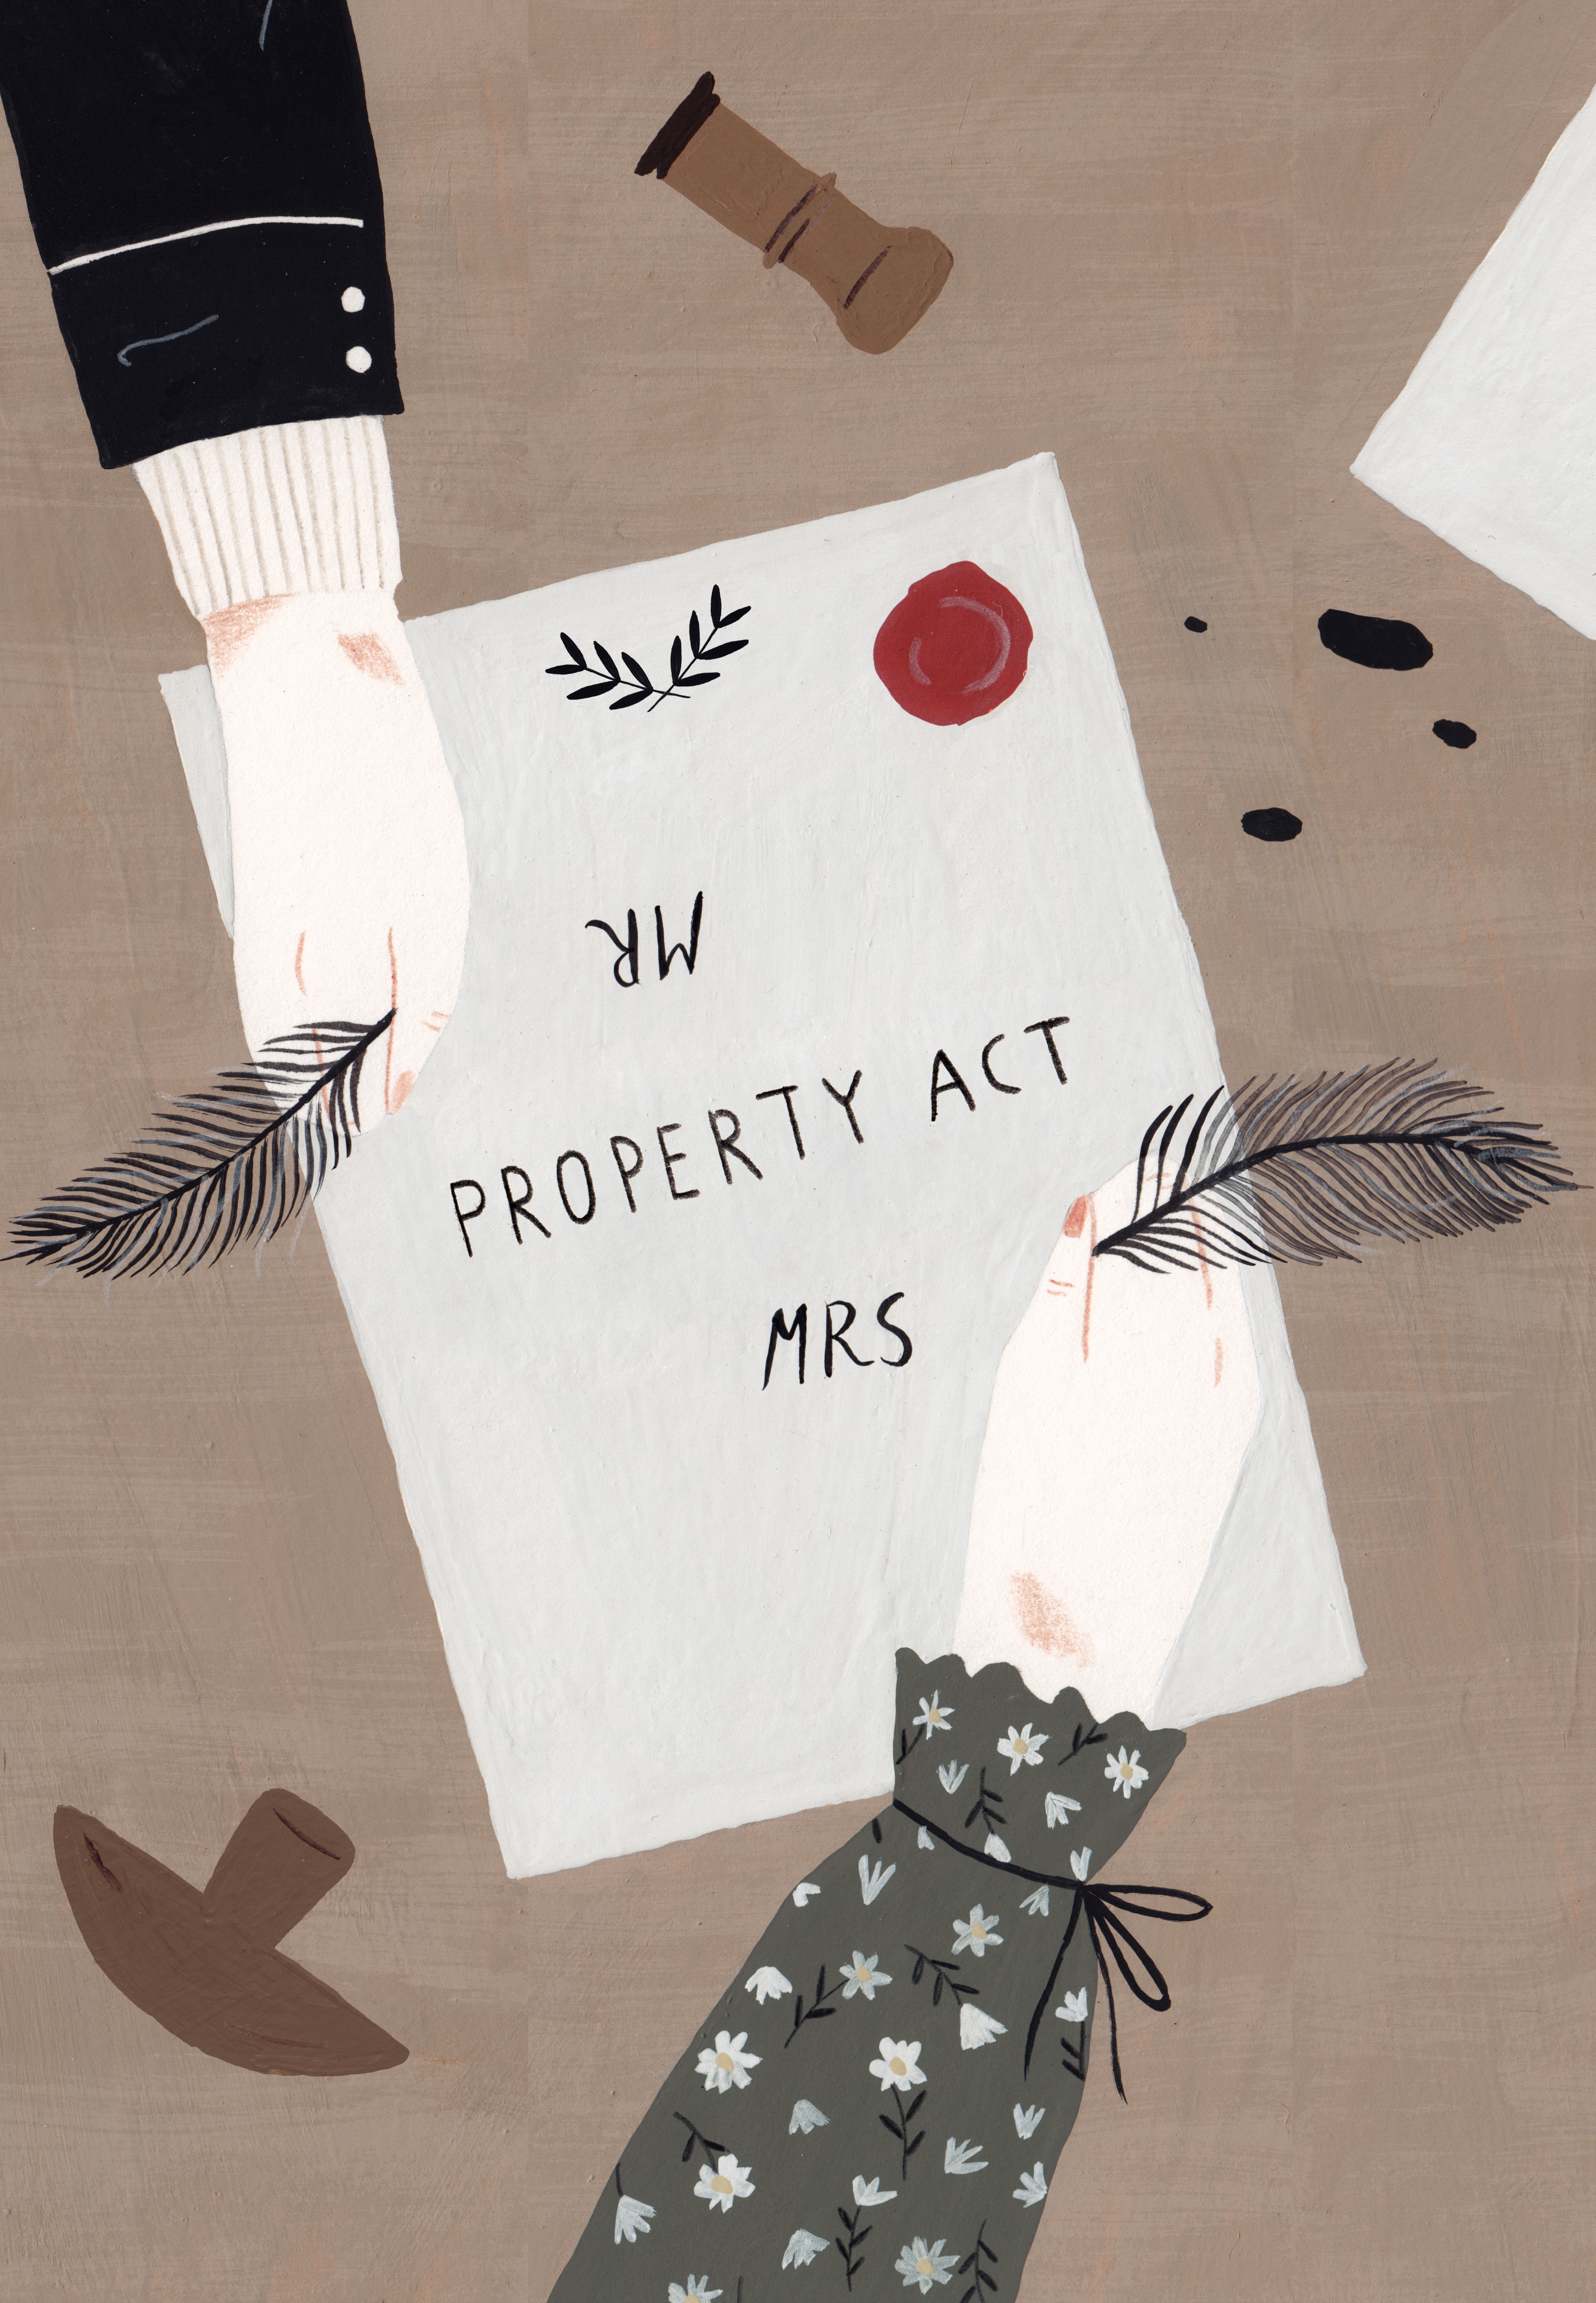 Illustration of Married Women's Property Act in Mississippi